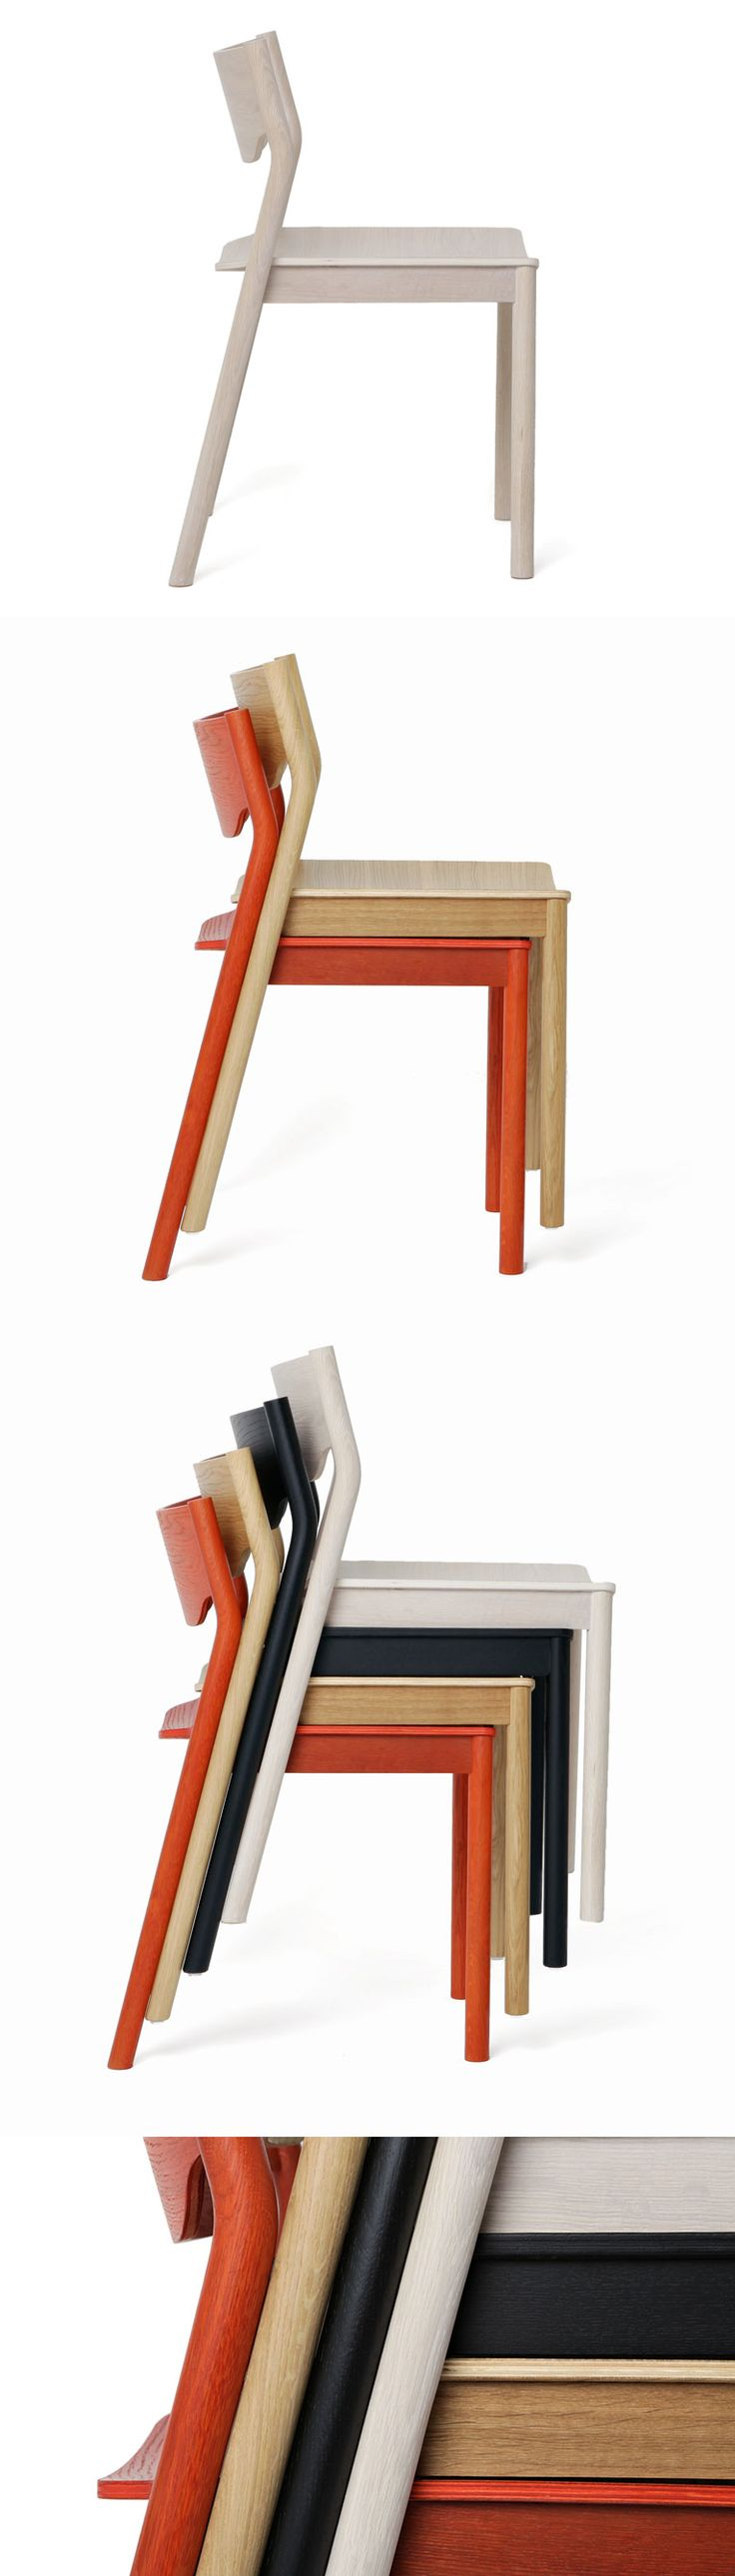 Tangerine Stackable Chairs by Simon James